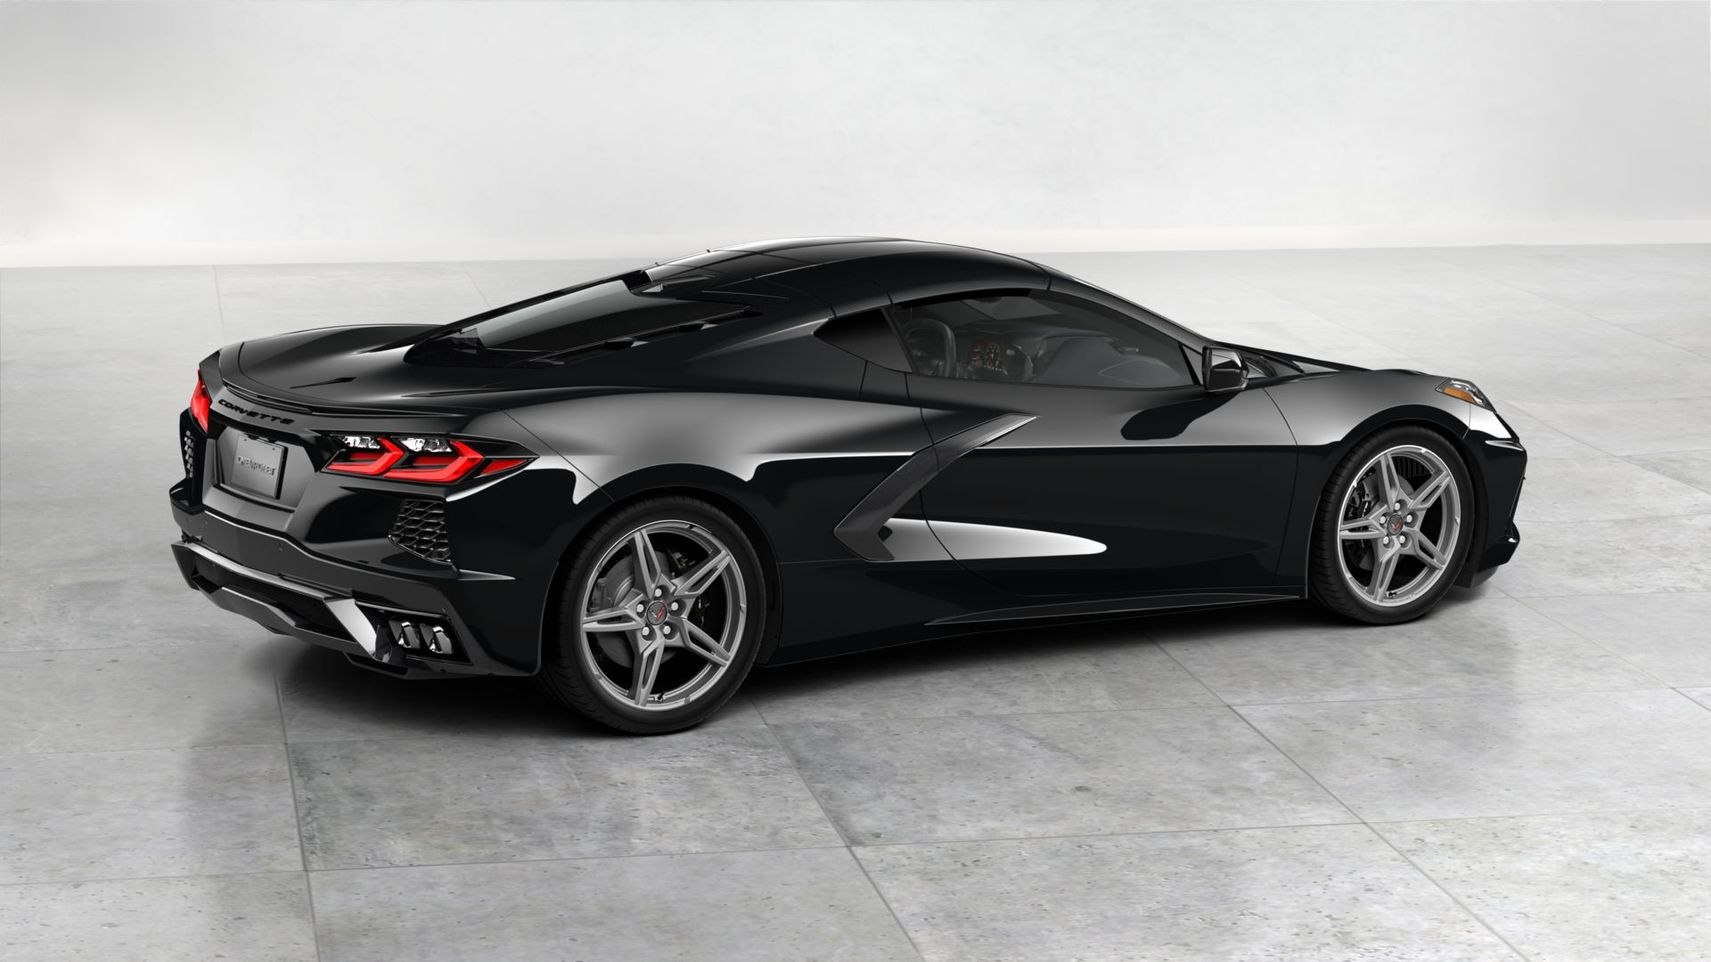 Chevrolet Corvette Stingray 2021 2LT Coupe 6.2 V8 DI VVT Бензин 8 ст АКПП Задний